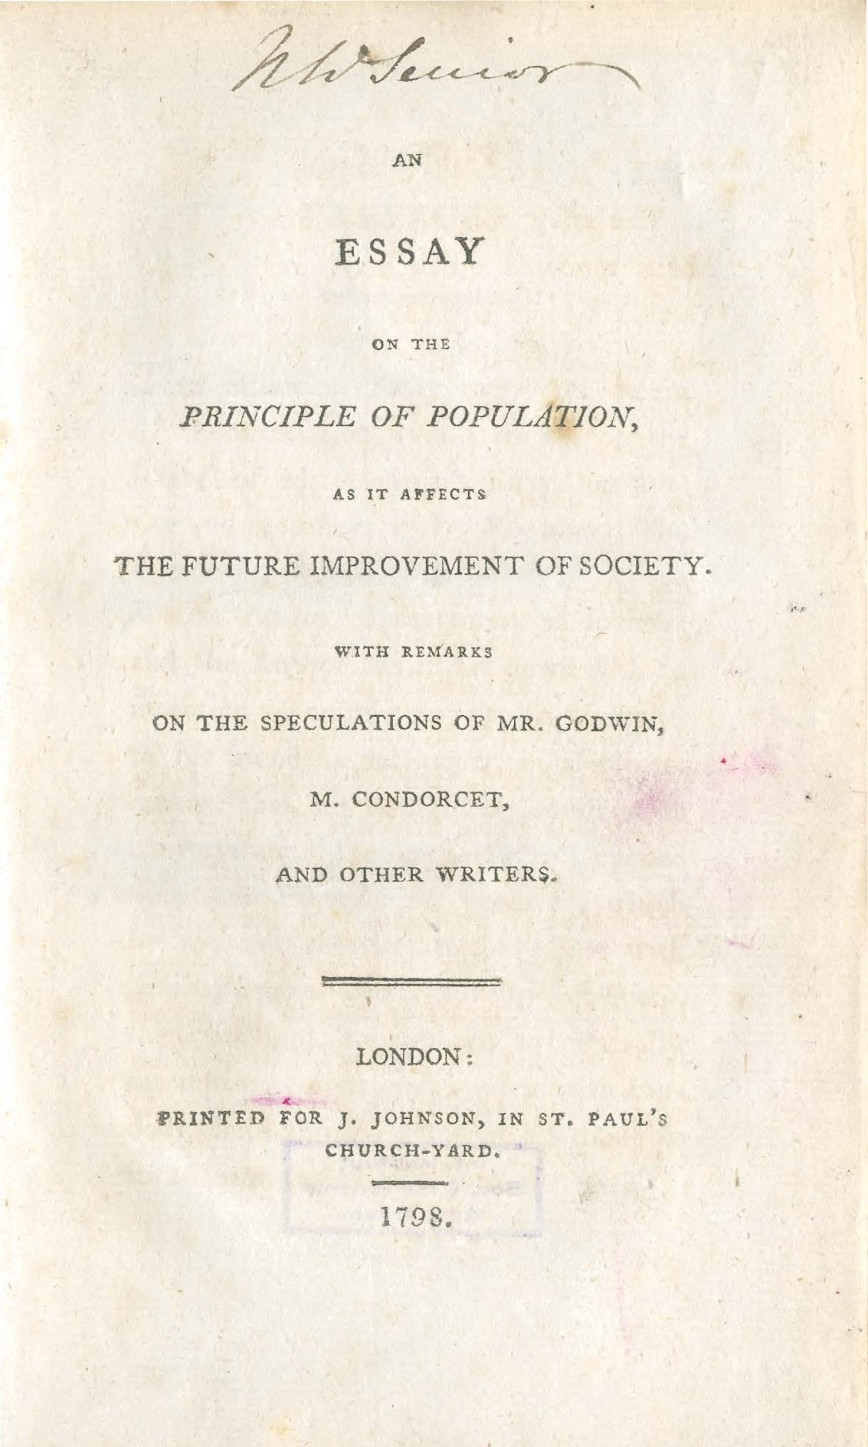 016 Essay On Population Impressive Explosion In Nigeria And Its Consequences Growth Wikipedia